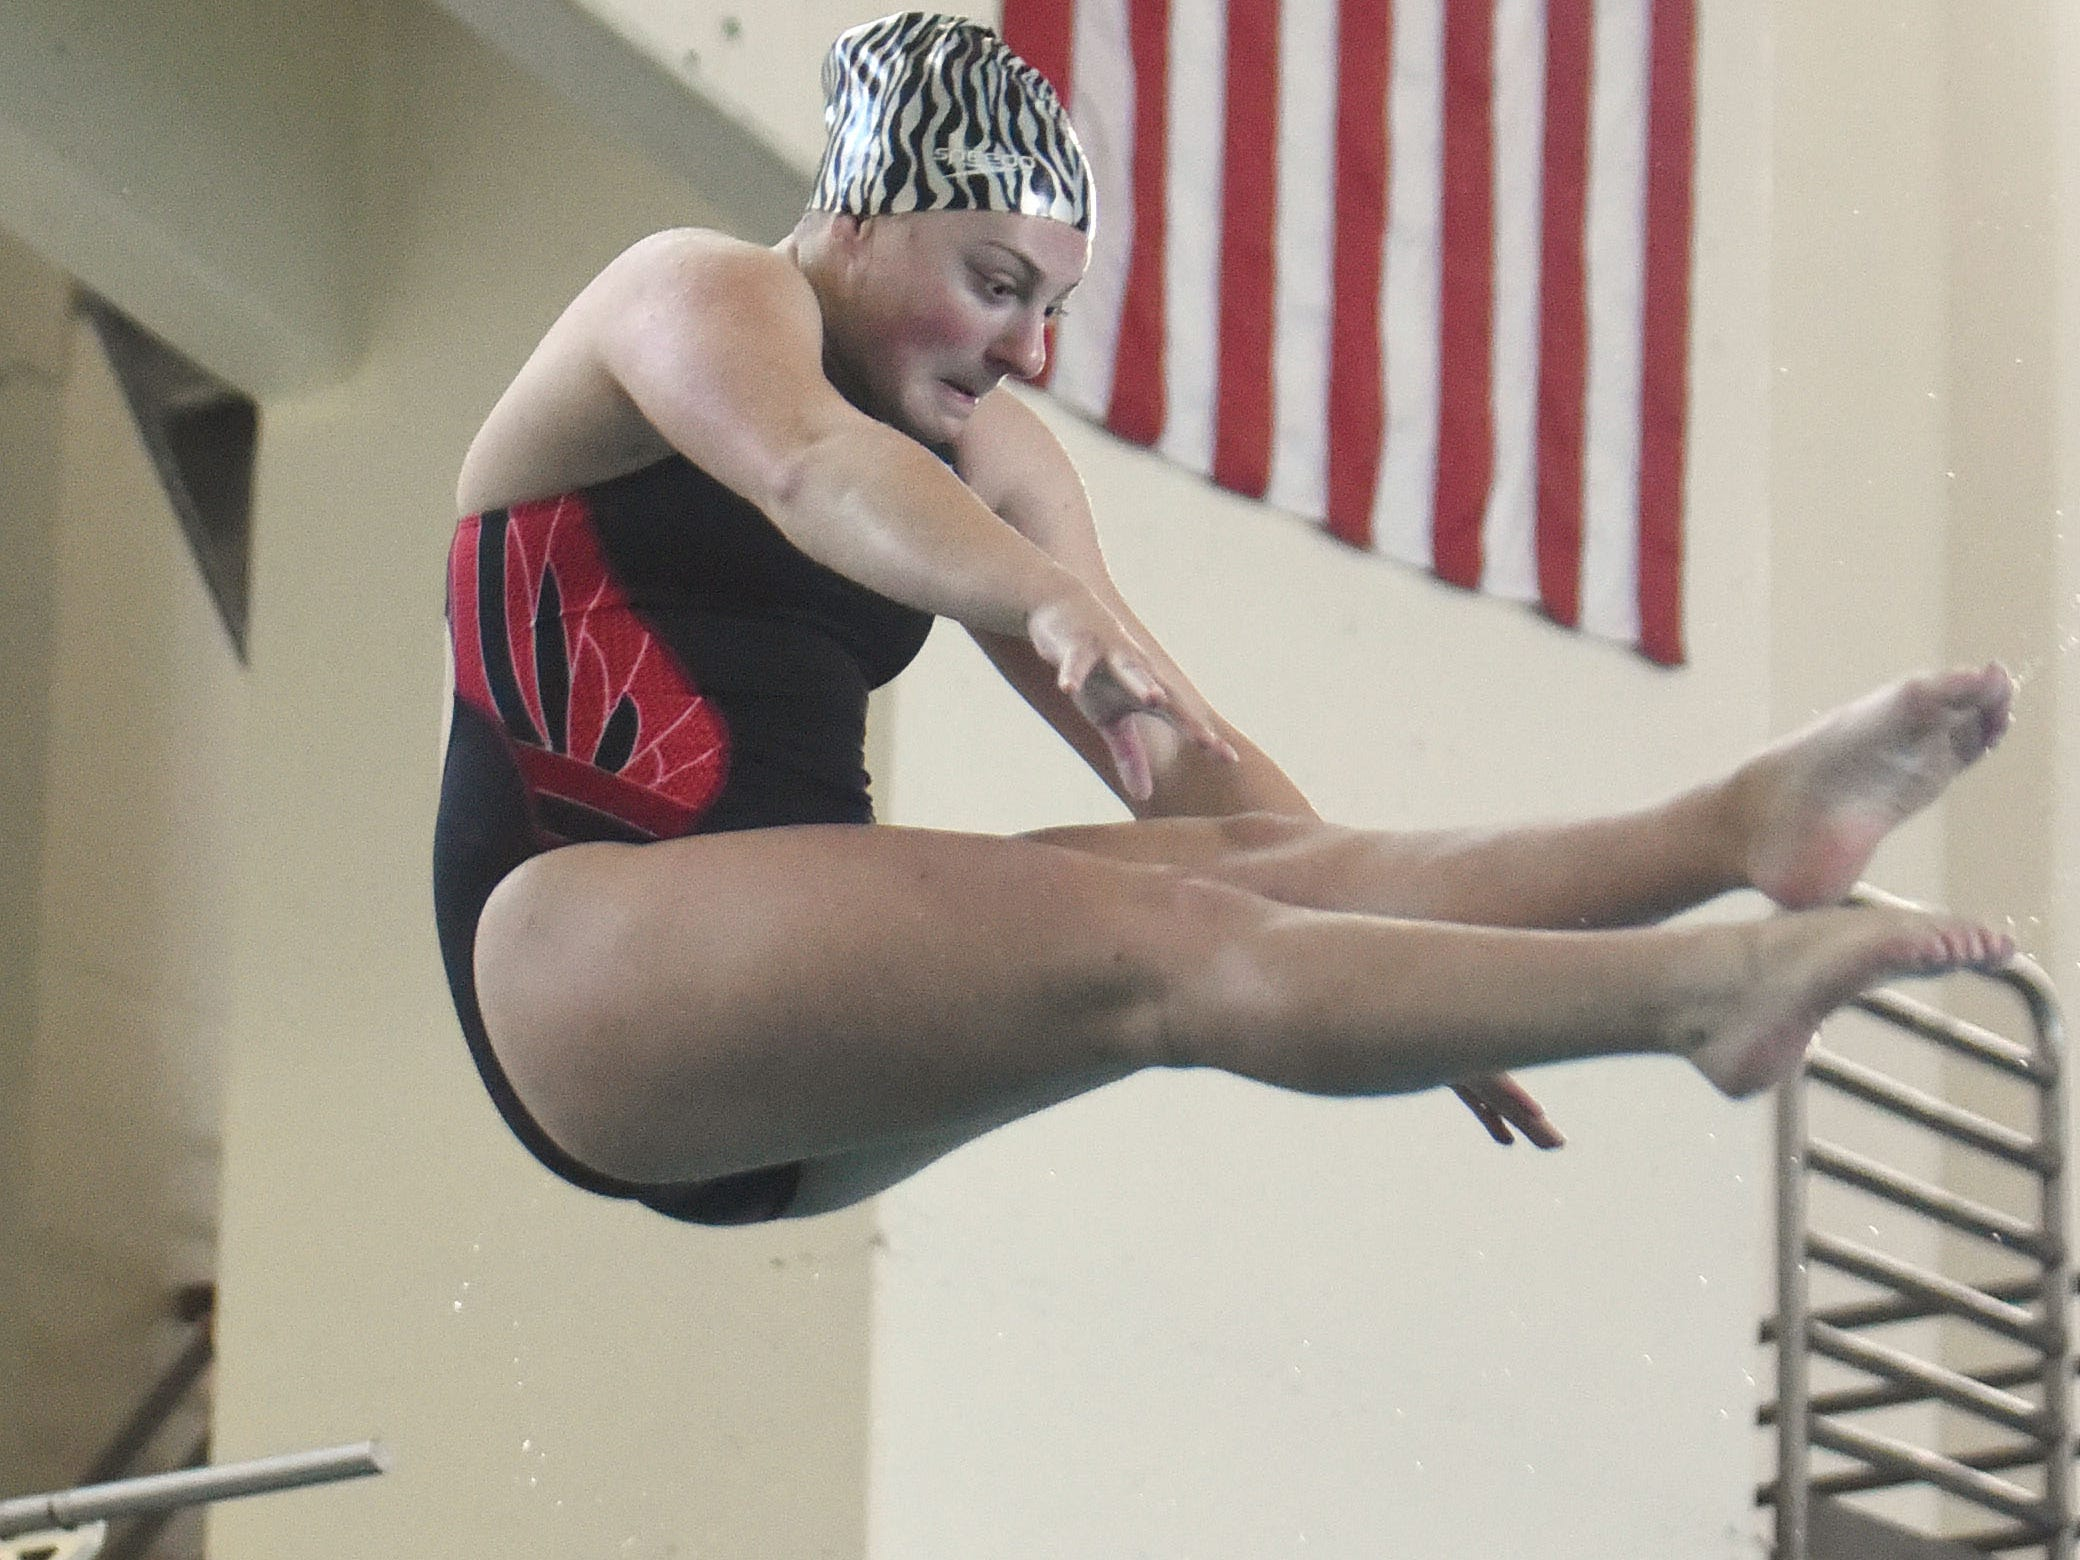 Silverton's Madison Cock, who has signed a letter of intent to compete in diving at the University of Utah, dives during practice on Wednesday, April 15, 2015, at the Tualatin Hills Park & Recreation Center in Beaverton.